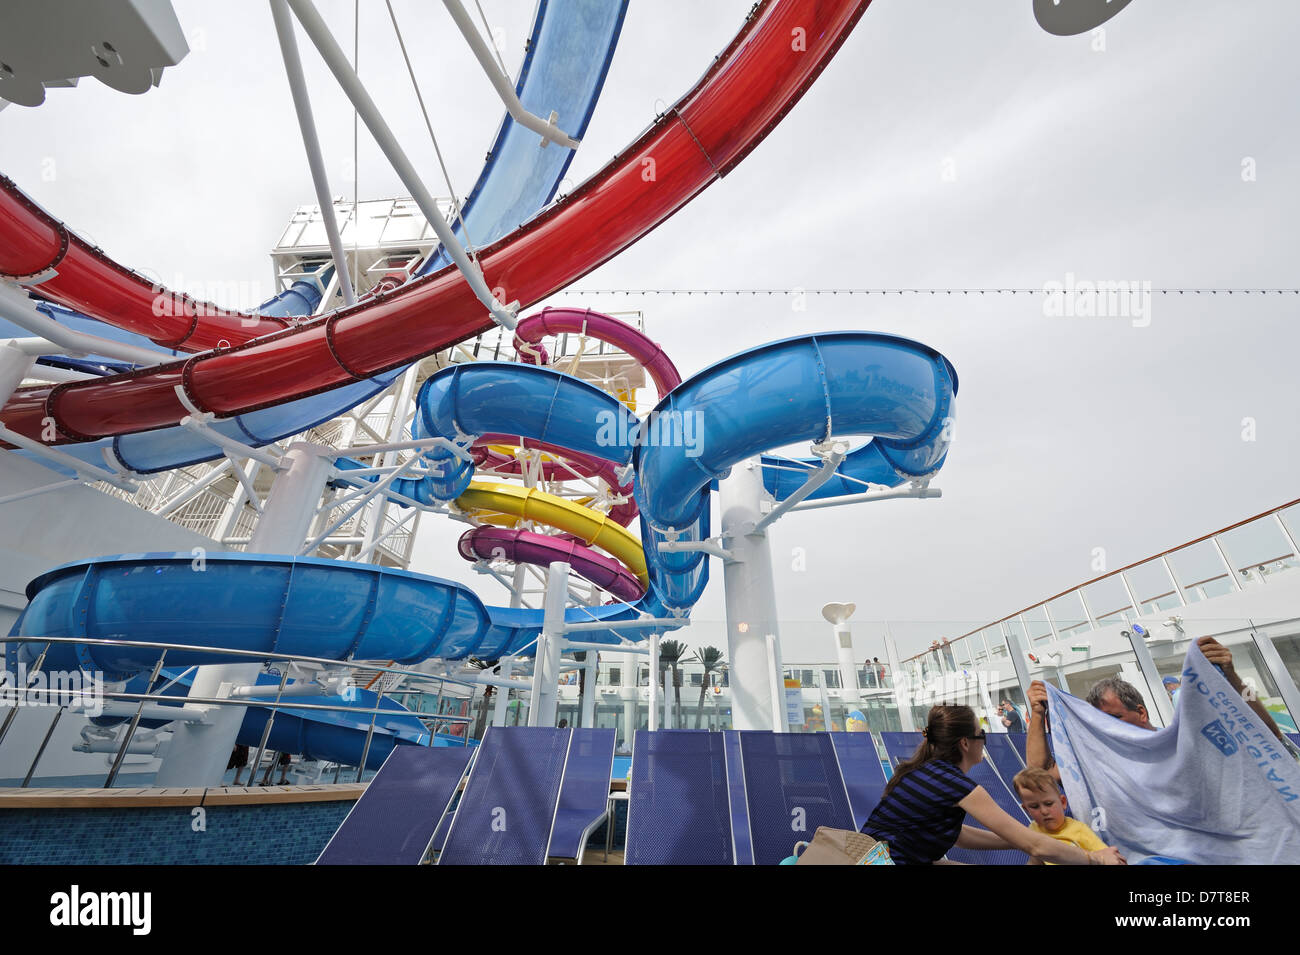 One of five water slides on Norwegian Cruise Line's newest ship, Norwegian Breakaway, launched in May 2013. - Stock Image